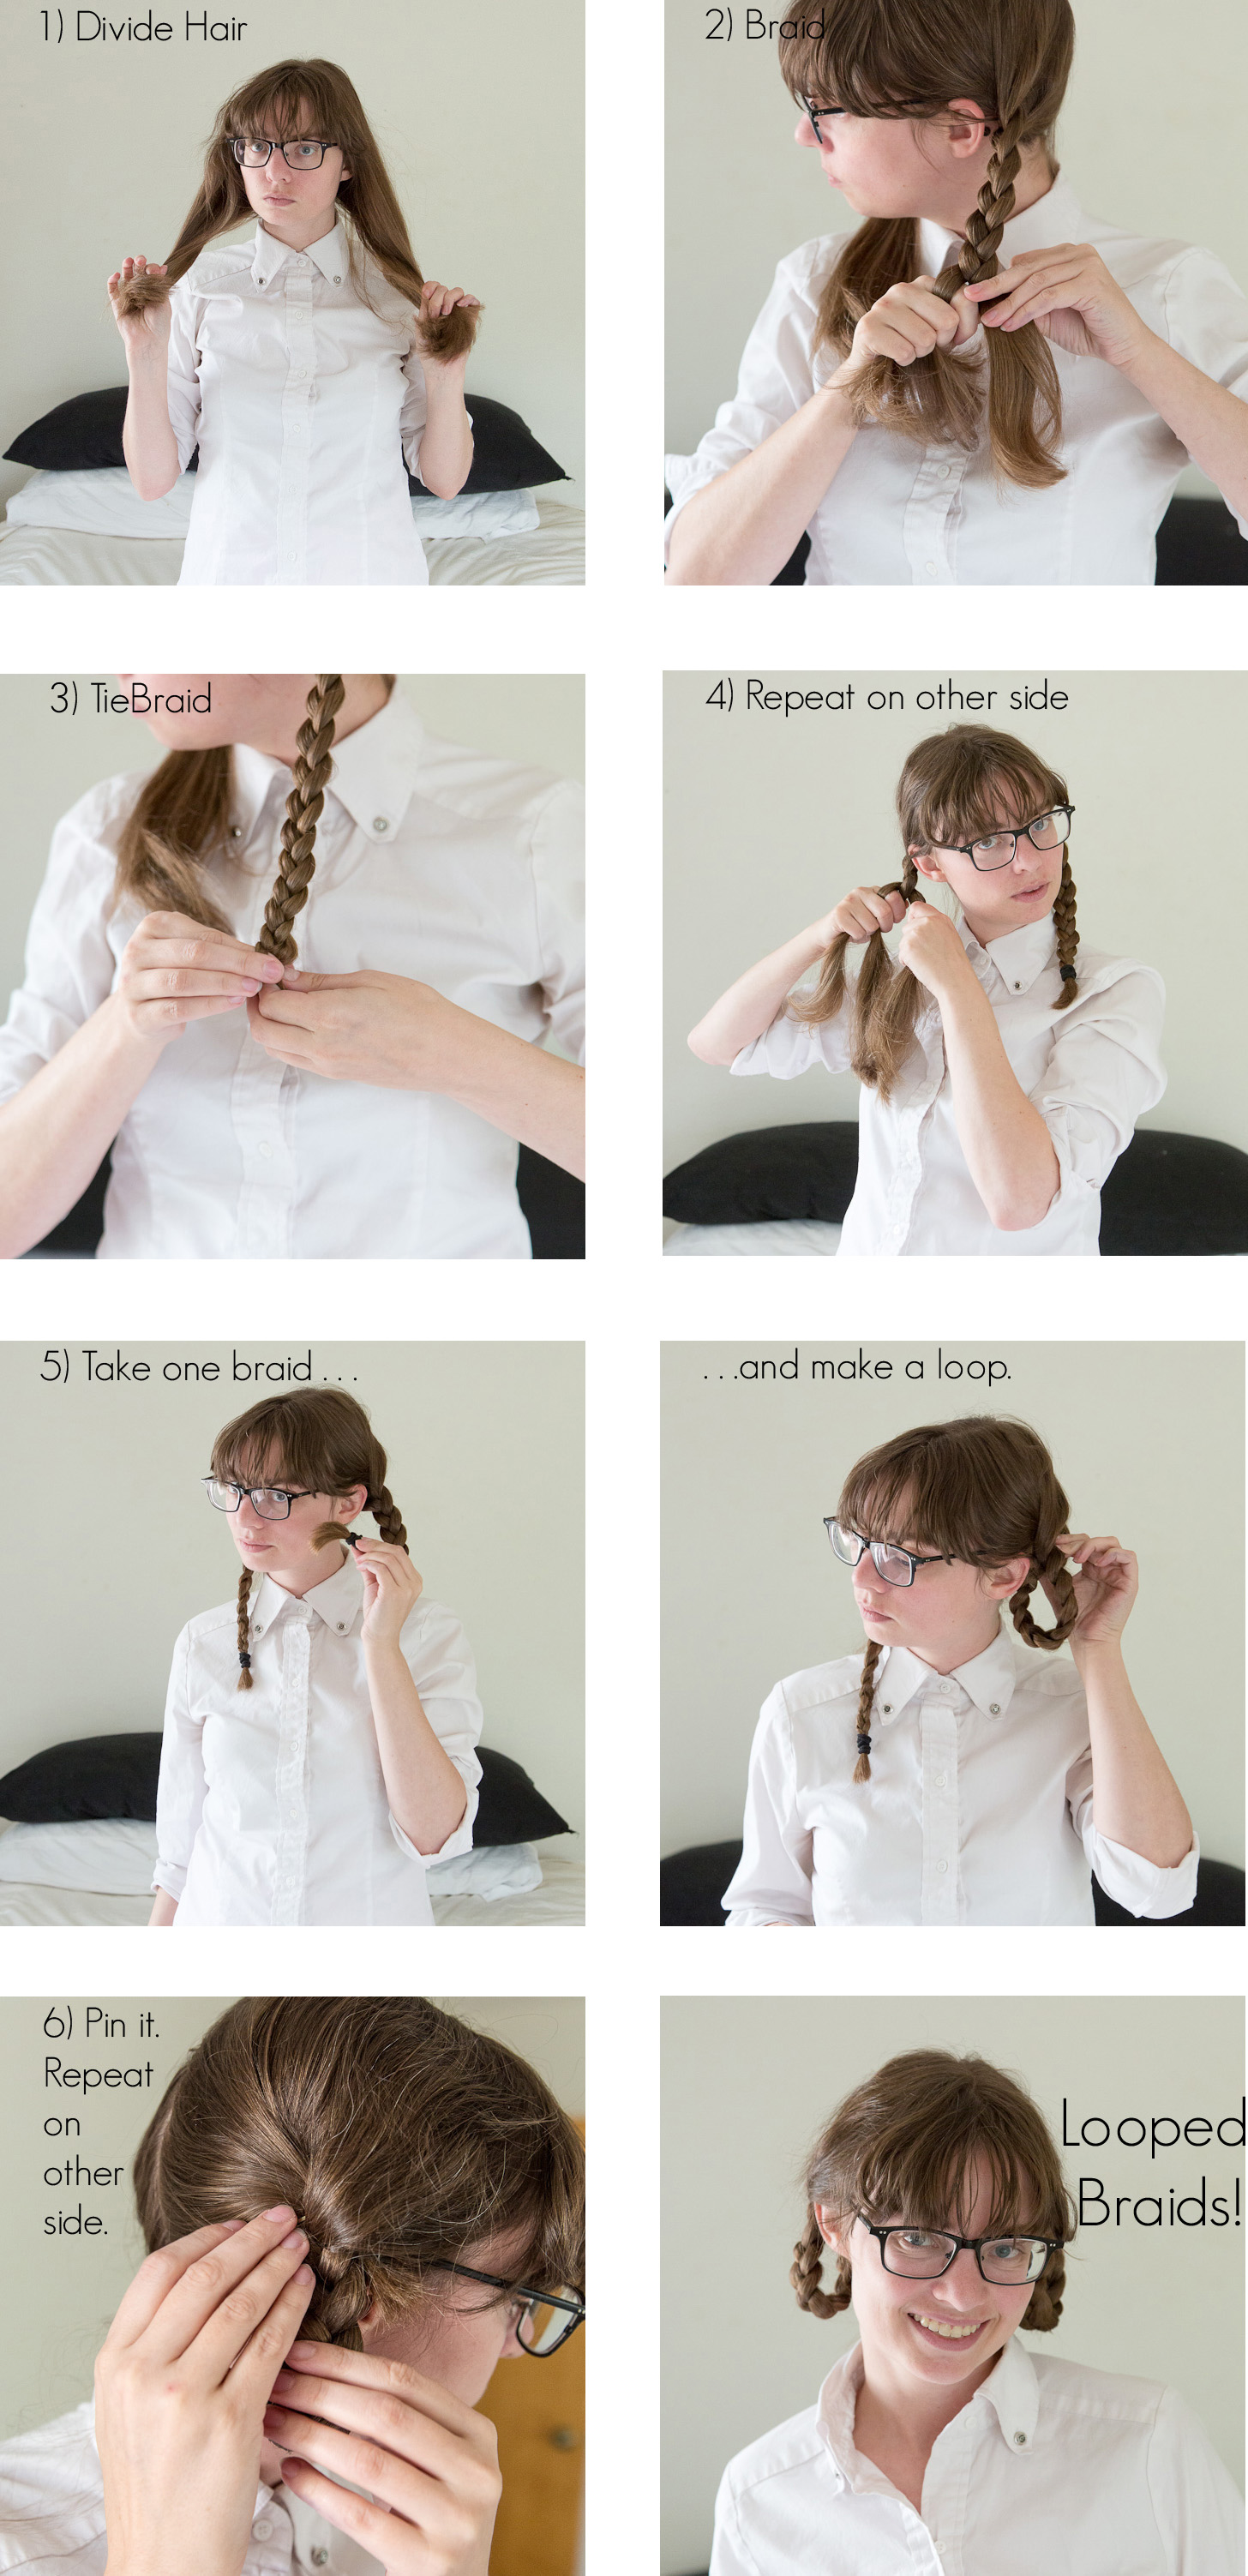 Looped Braids Instructions